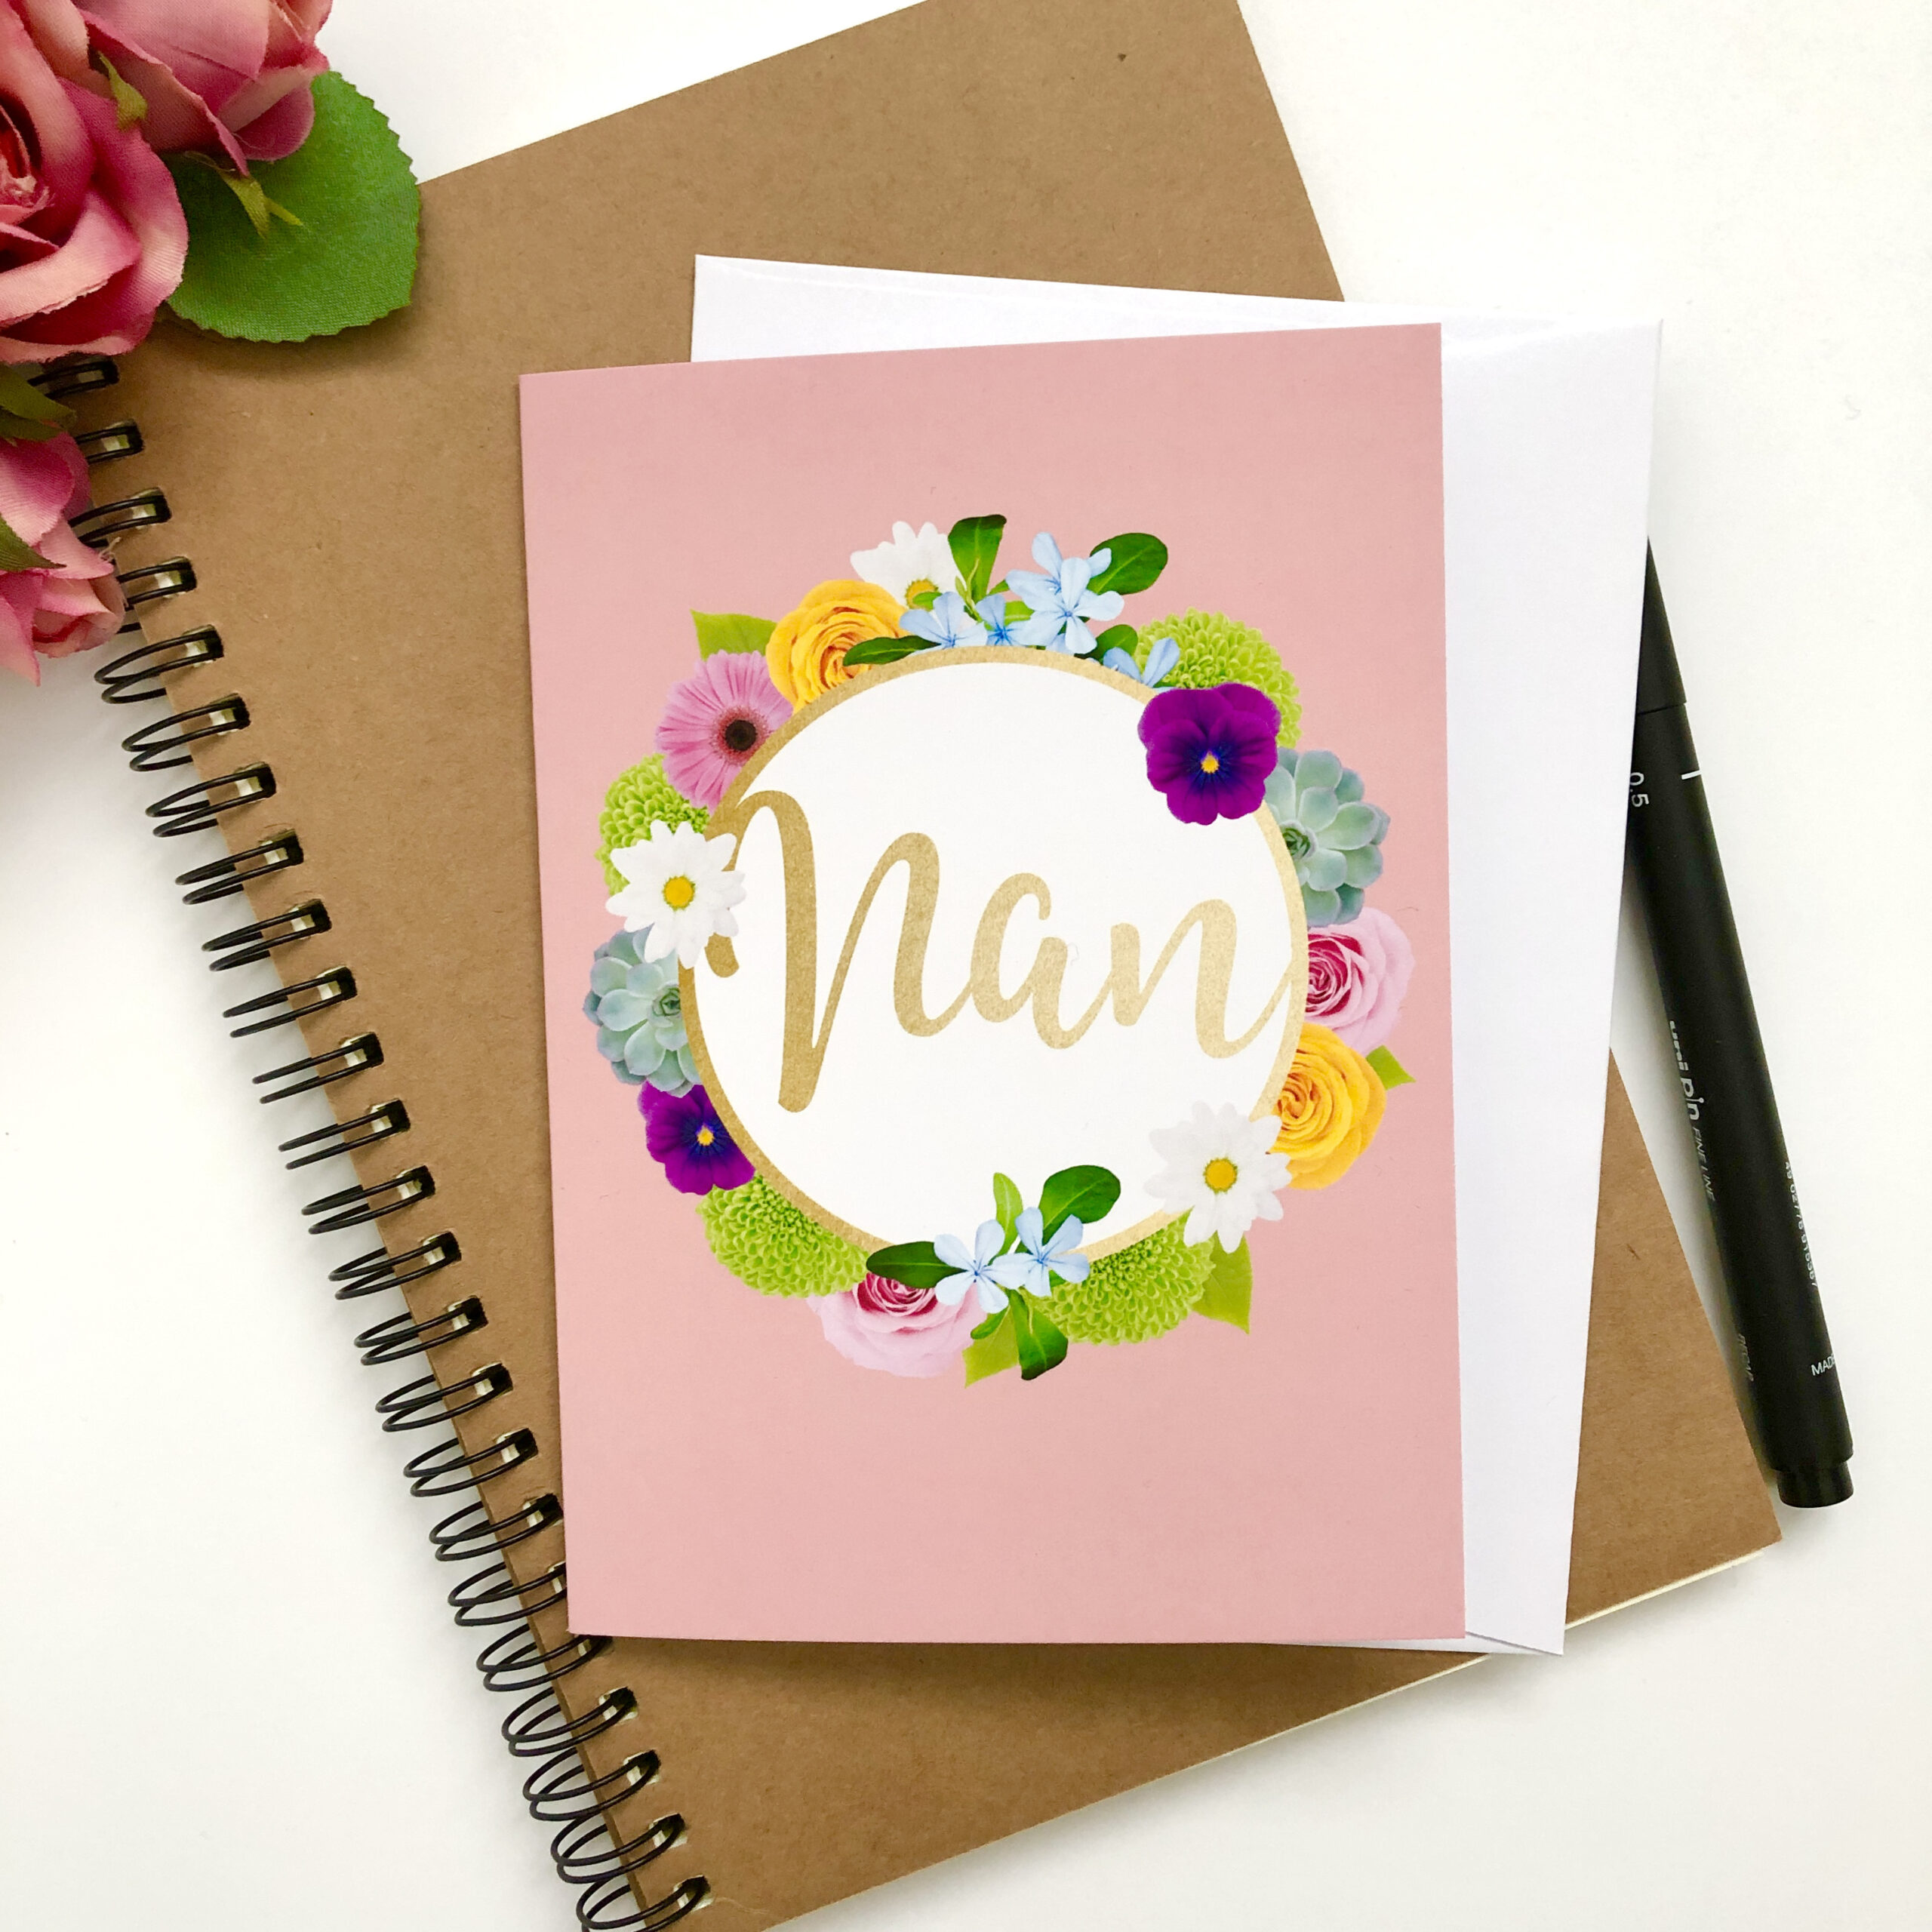 Greetings card for Nan featuring multicoloured floral wreath on a blush pink background